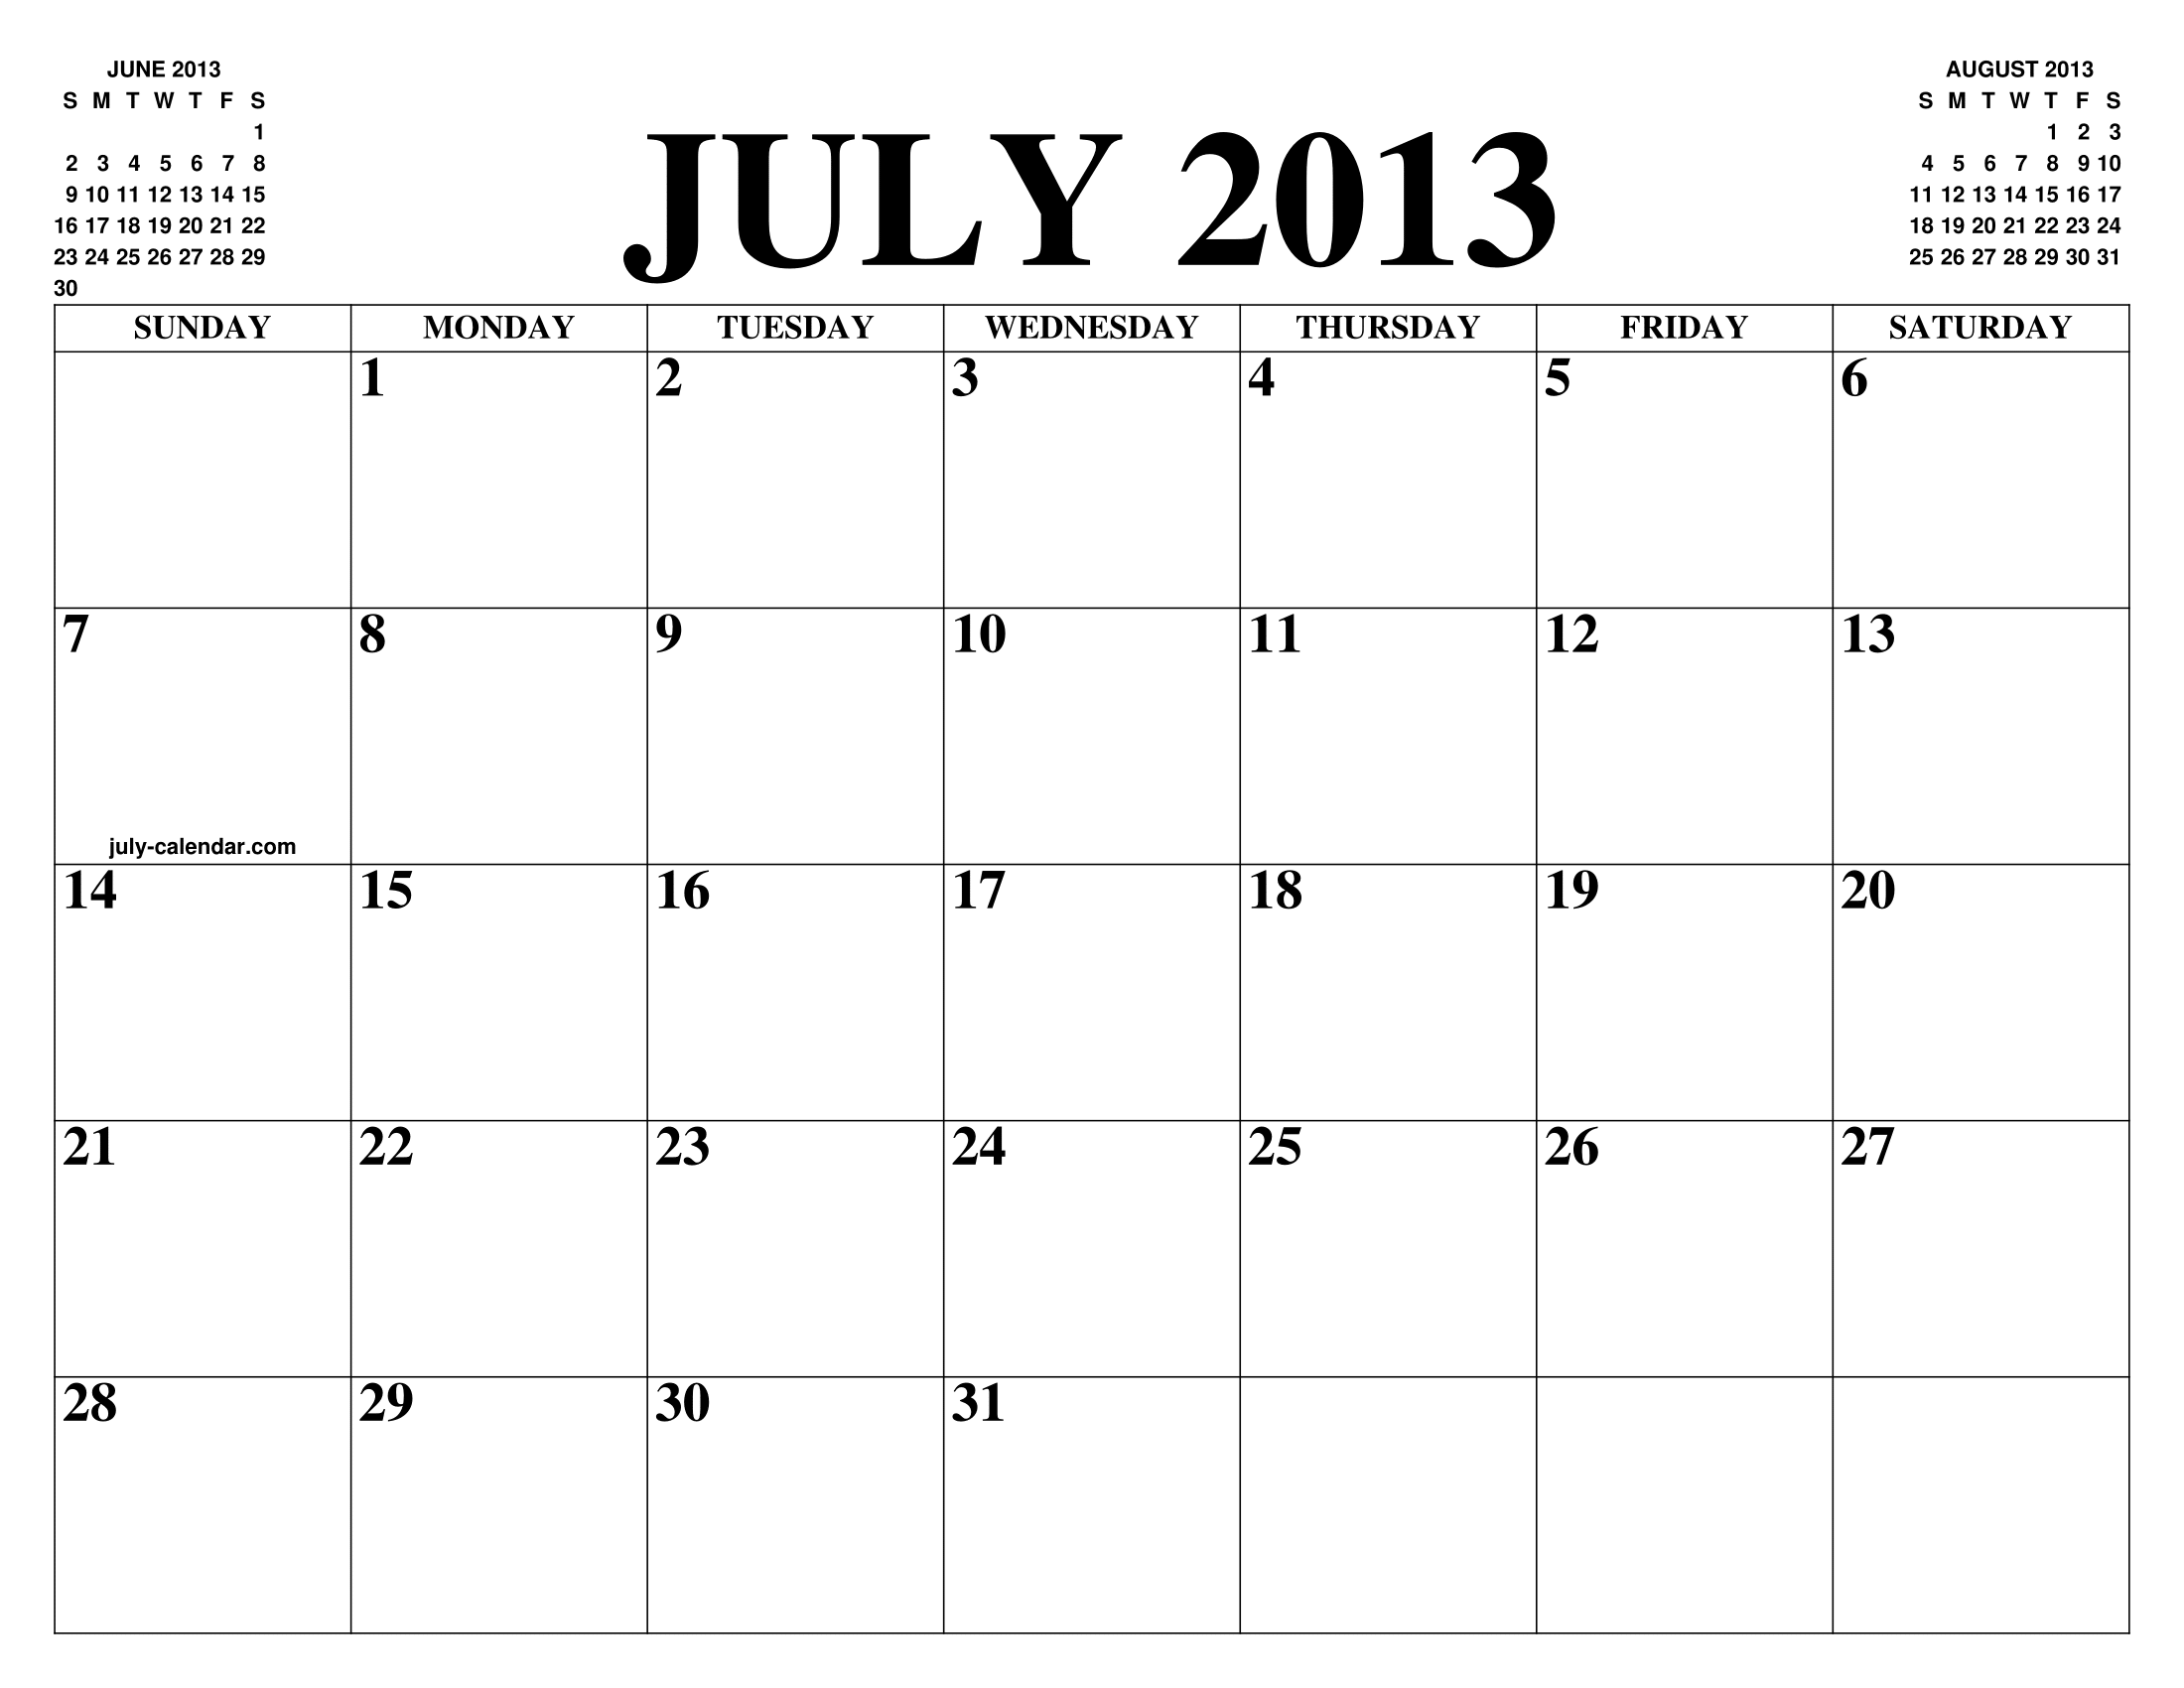 JULY 2013 CALENDAR OF THE MONTH: FREE PRINTABLE JULY ...